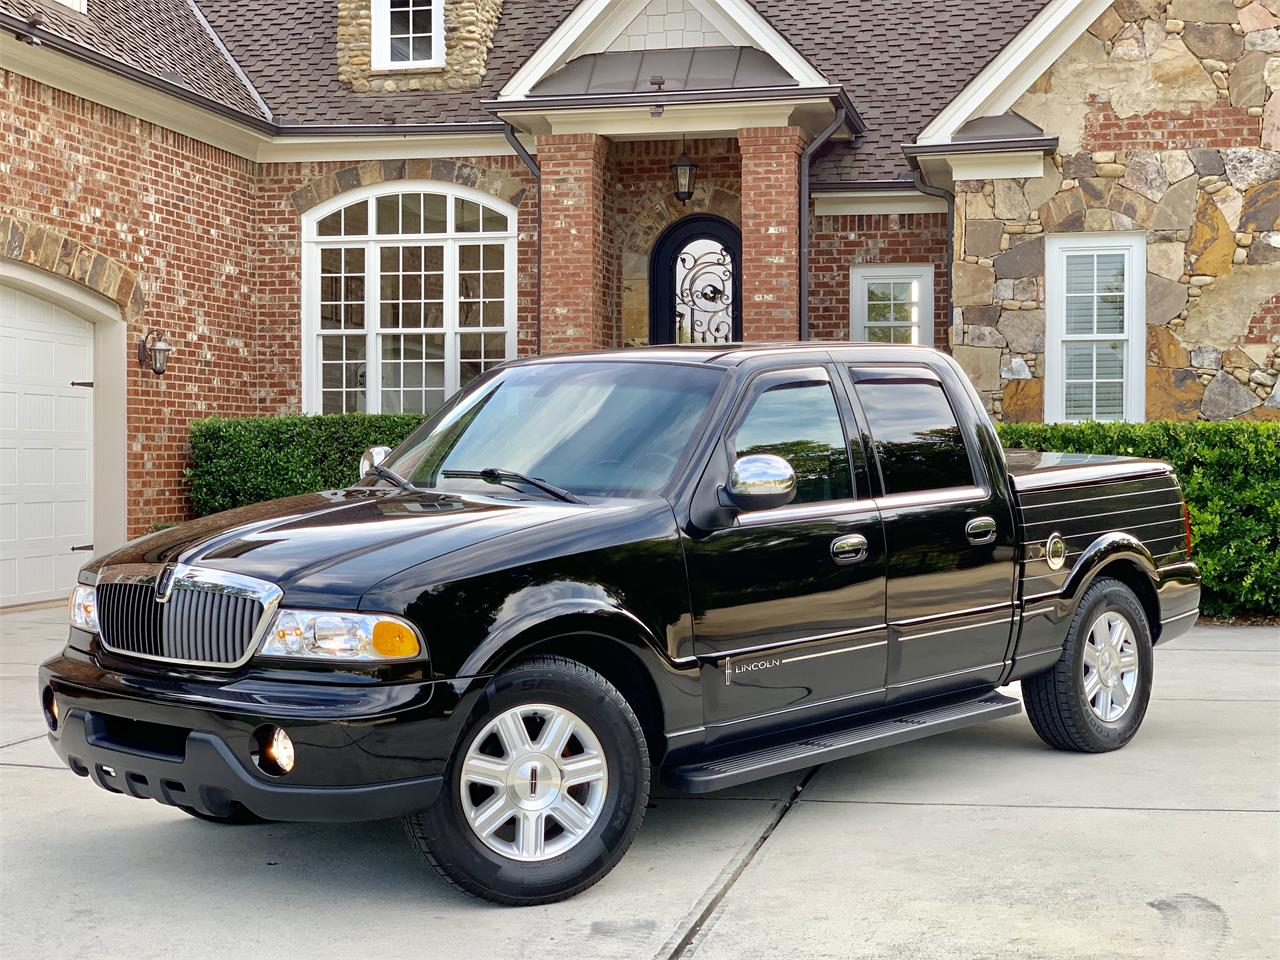 2002 Lincoln Blackwood Pickup (CC-1246152) for sale in Gainesville, Georgia